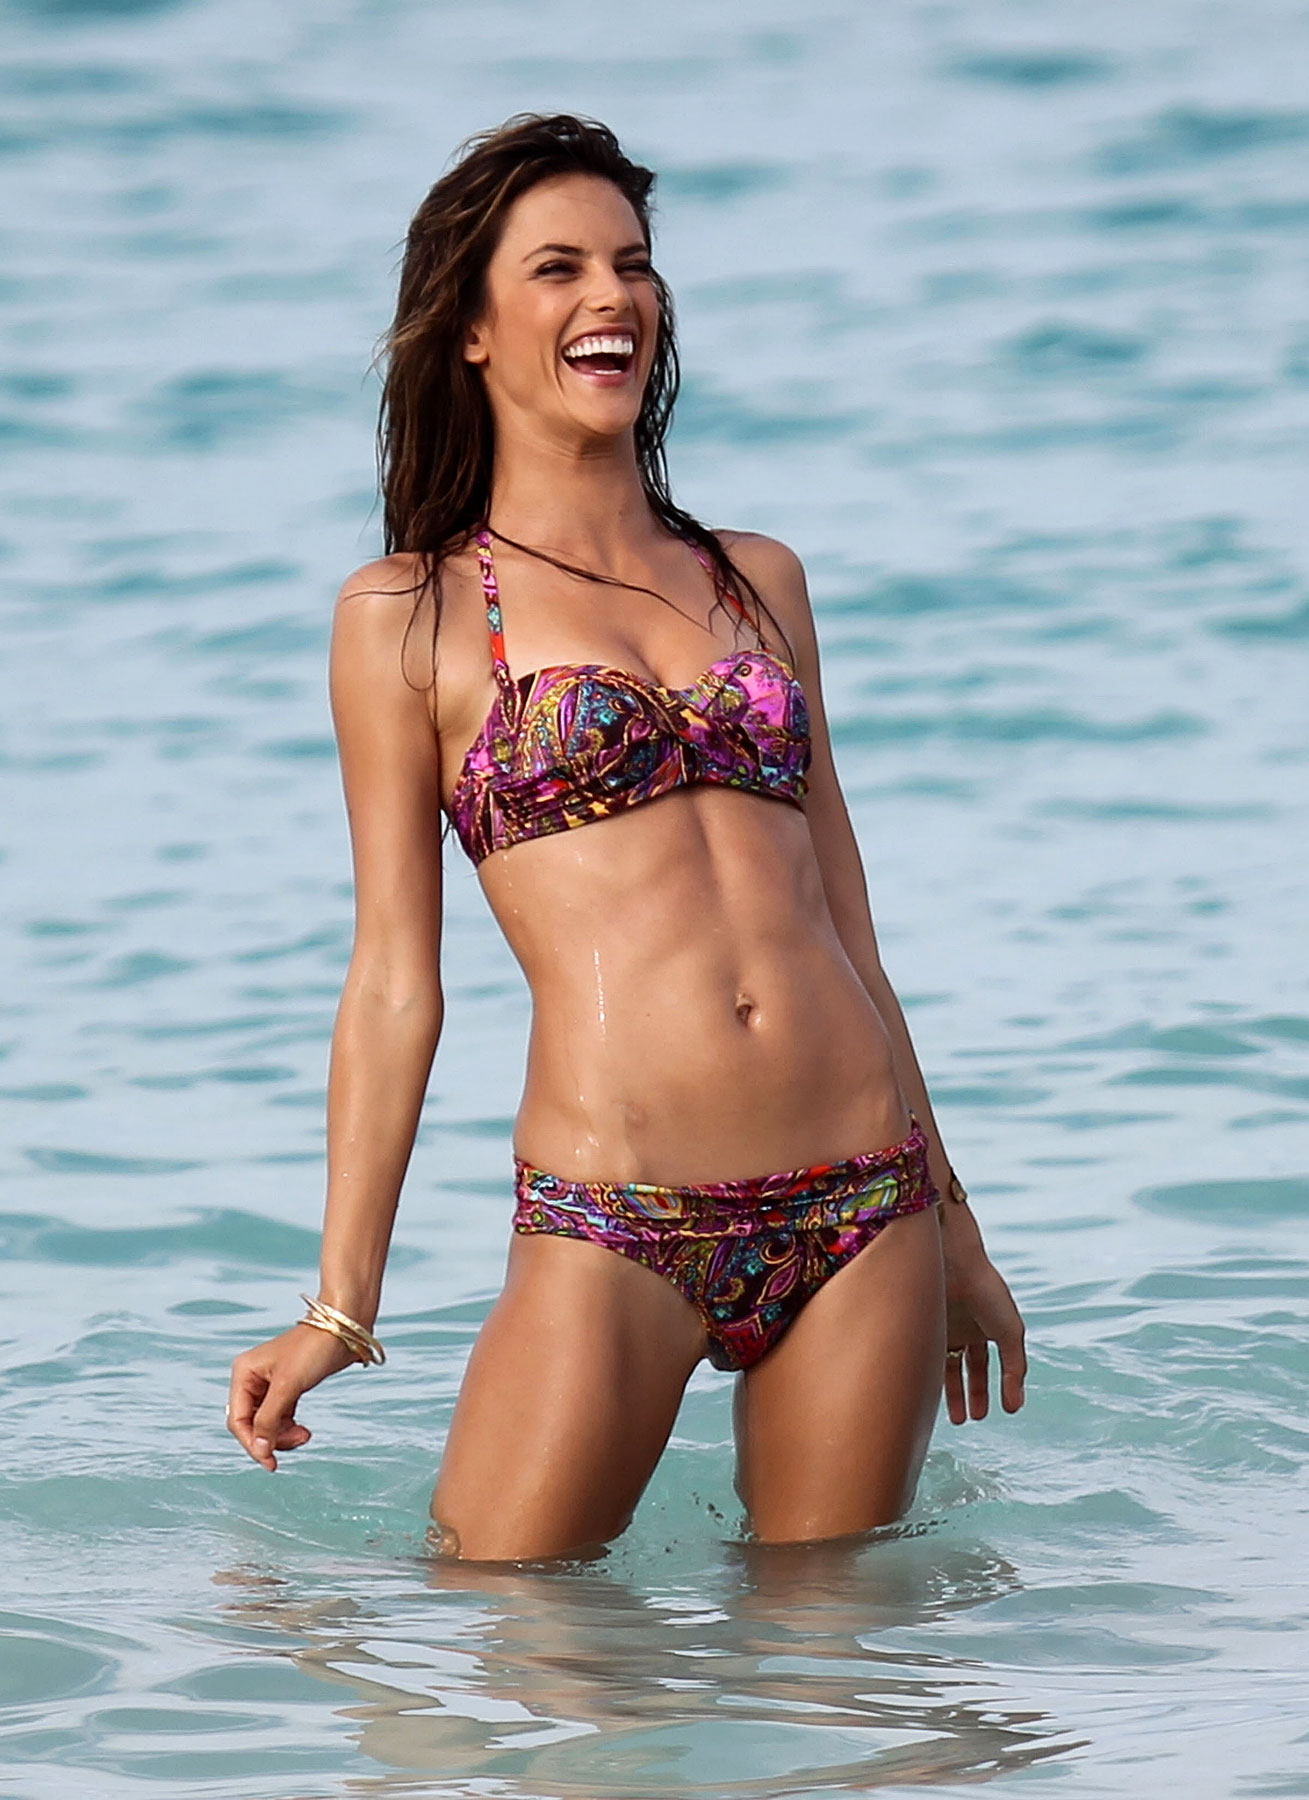 Bikini Friday With Alessandra Ambrosio (PHOTOS)